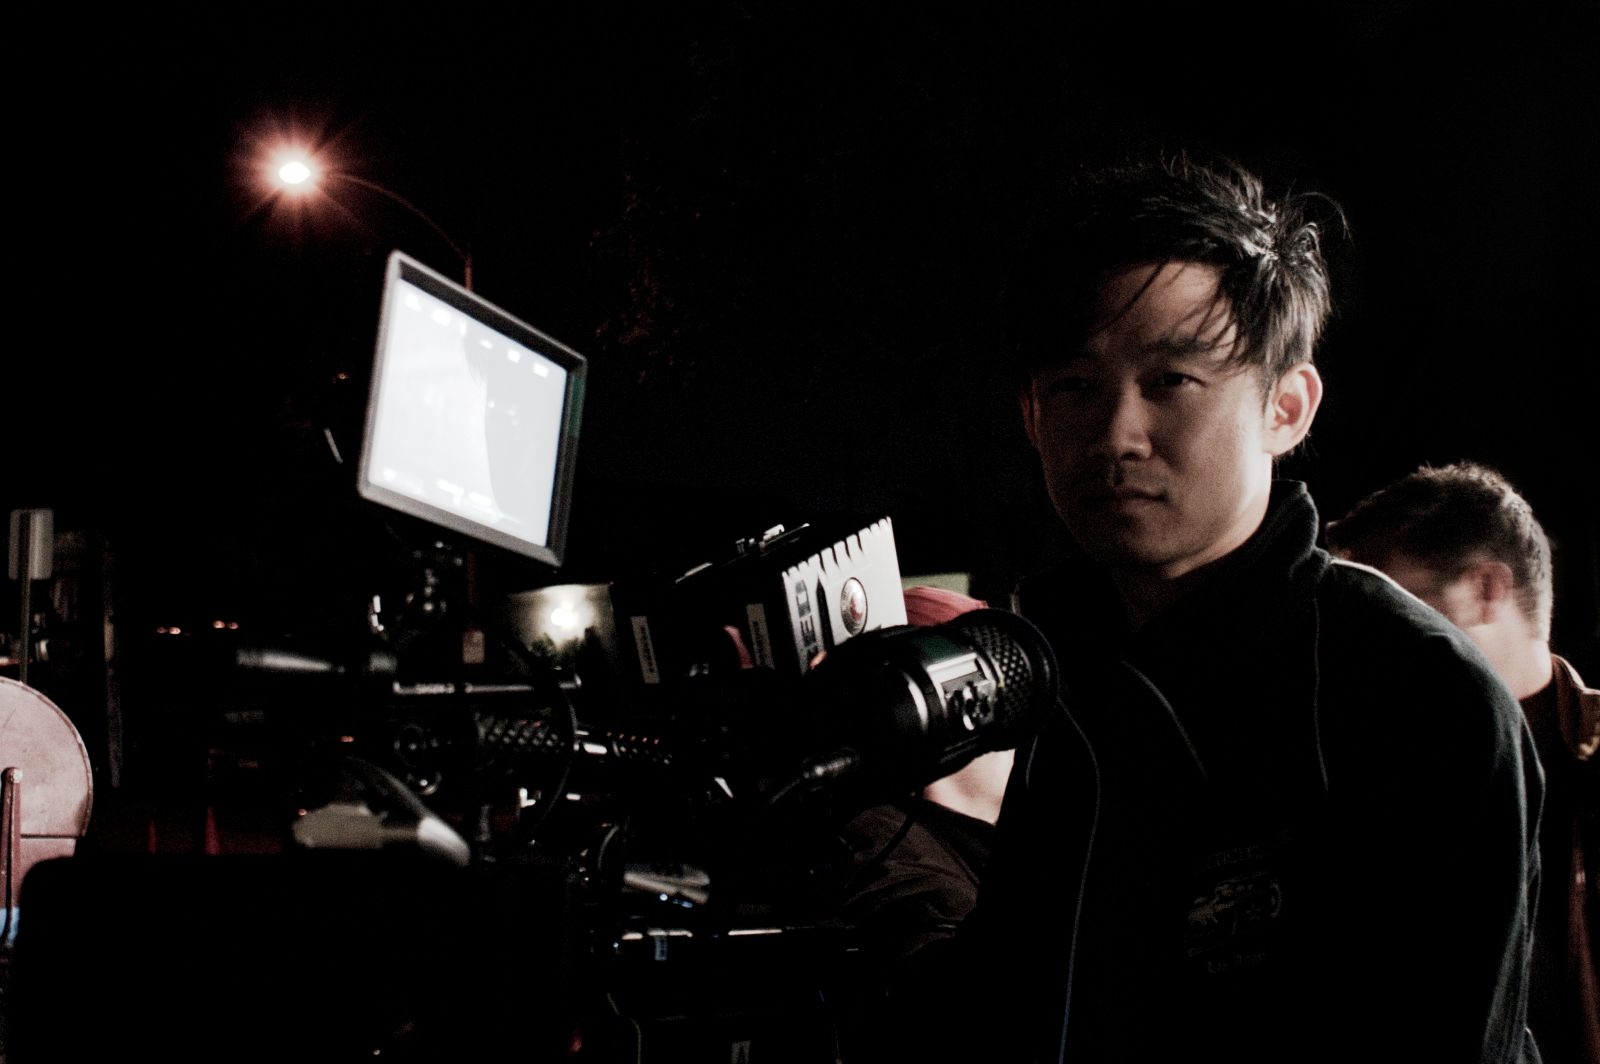 nycc-james-wan-insidious-header